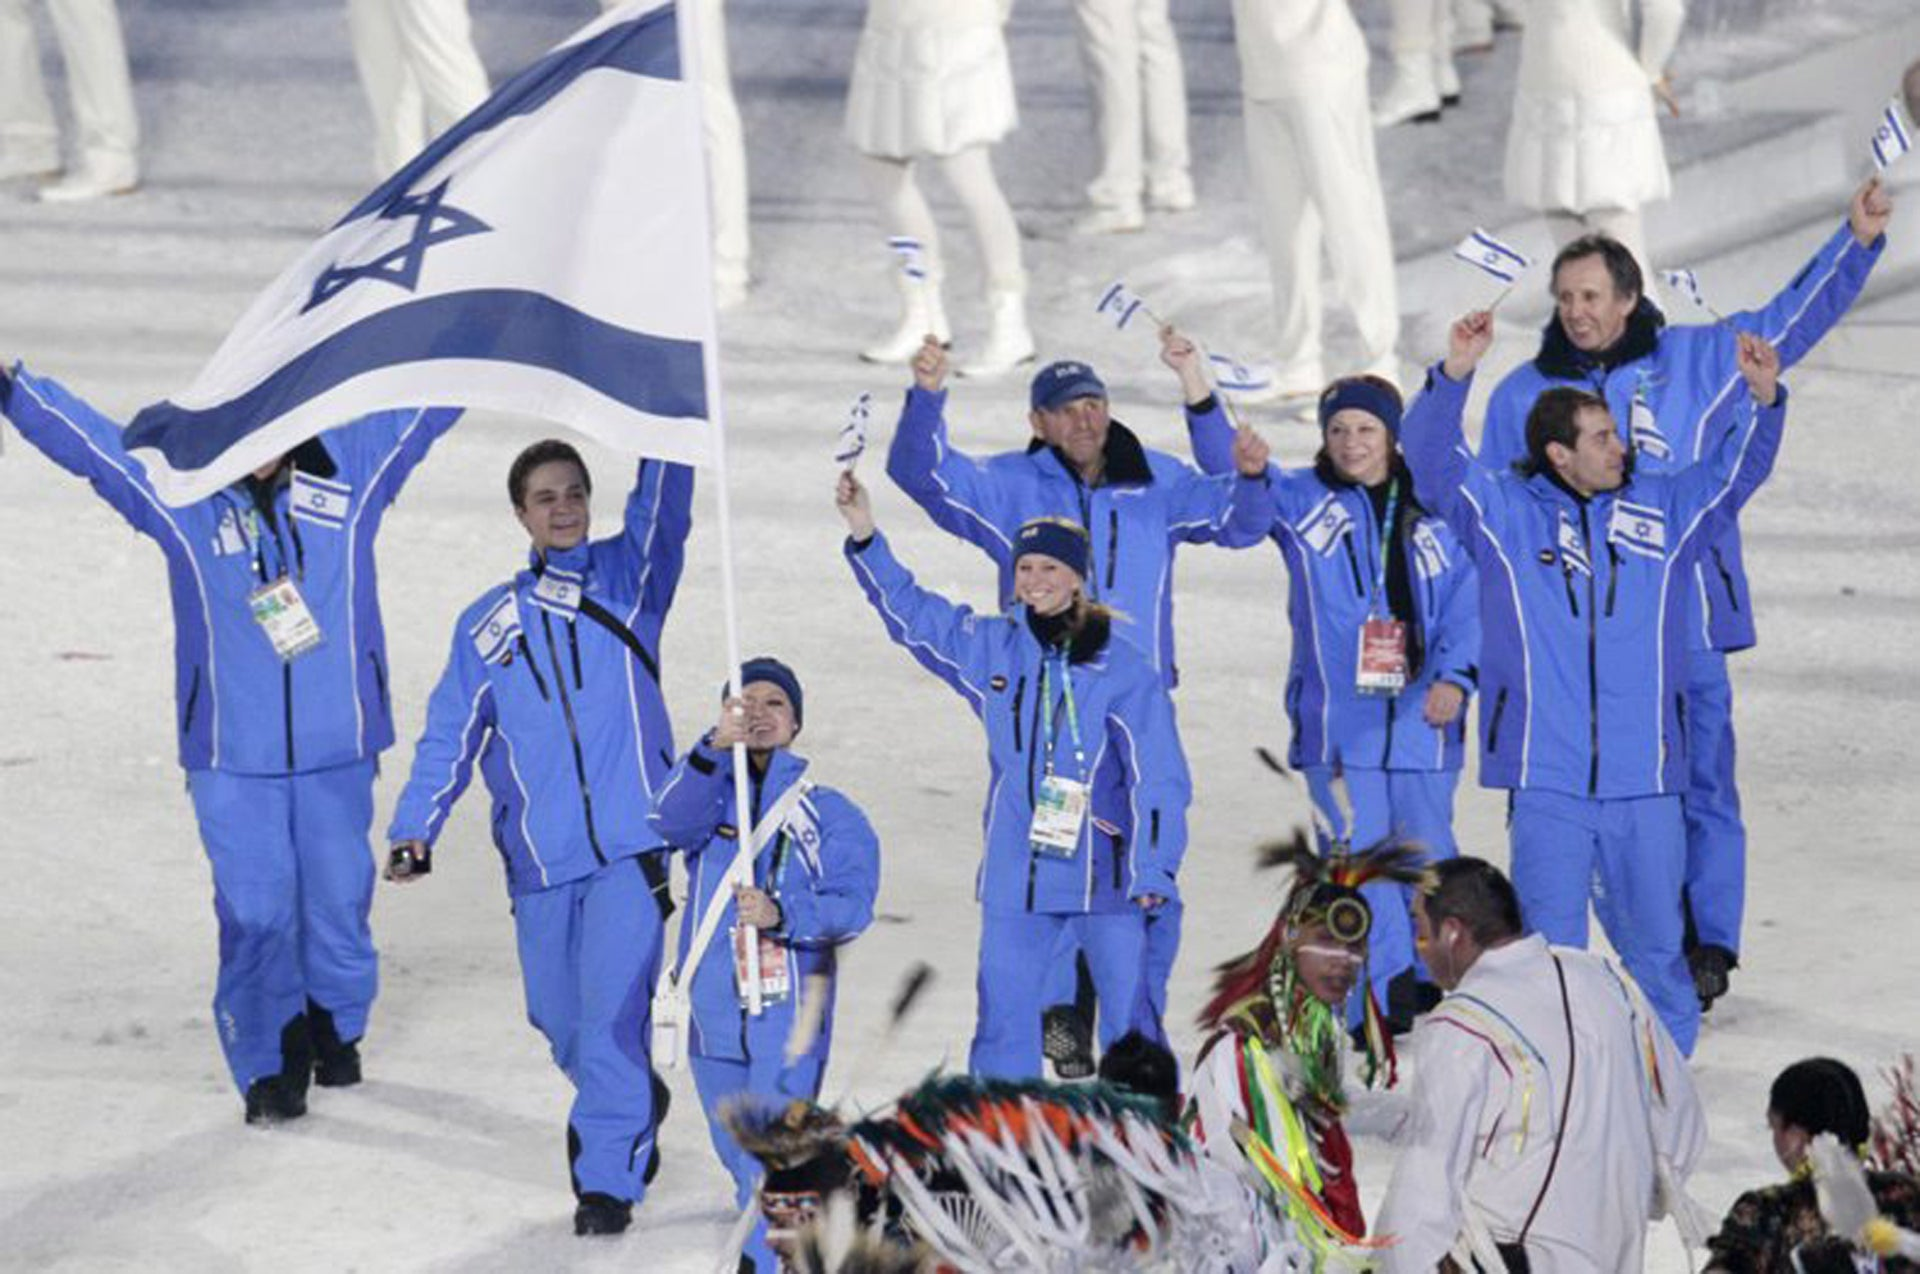 Members of Israeli Olympic team in Vancouver, 2010.